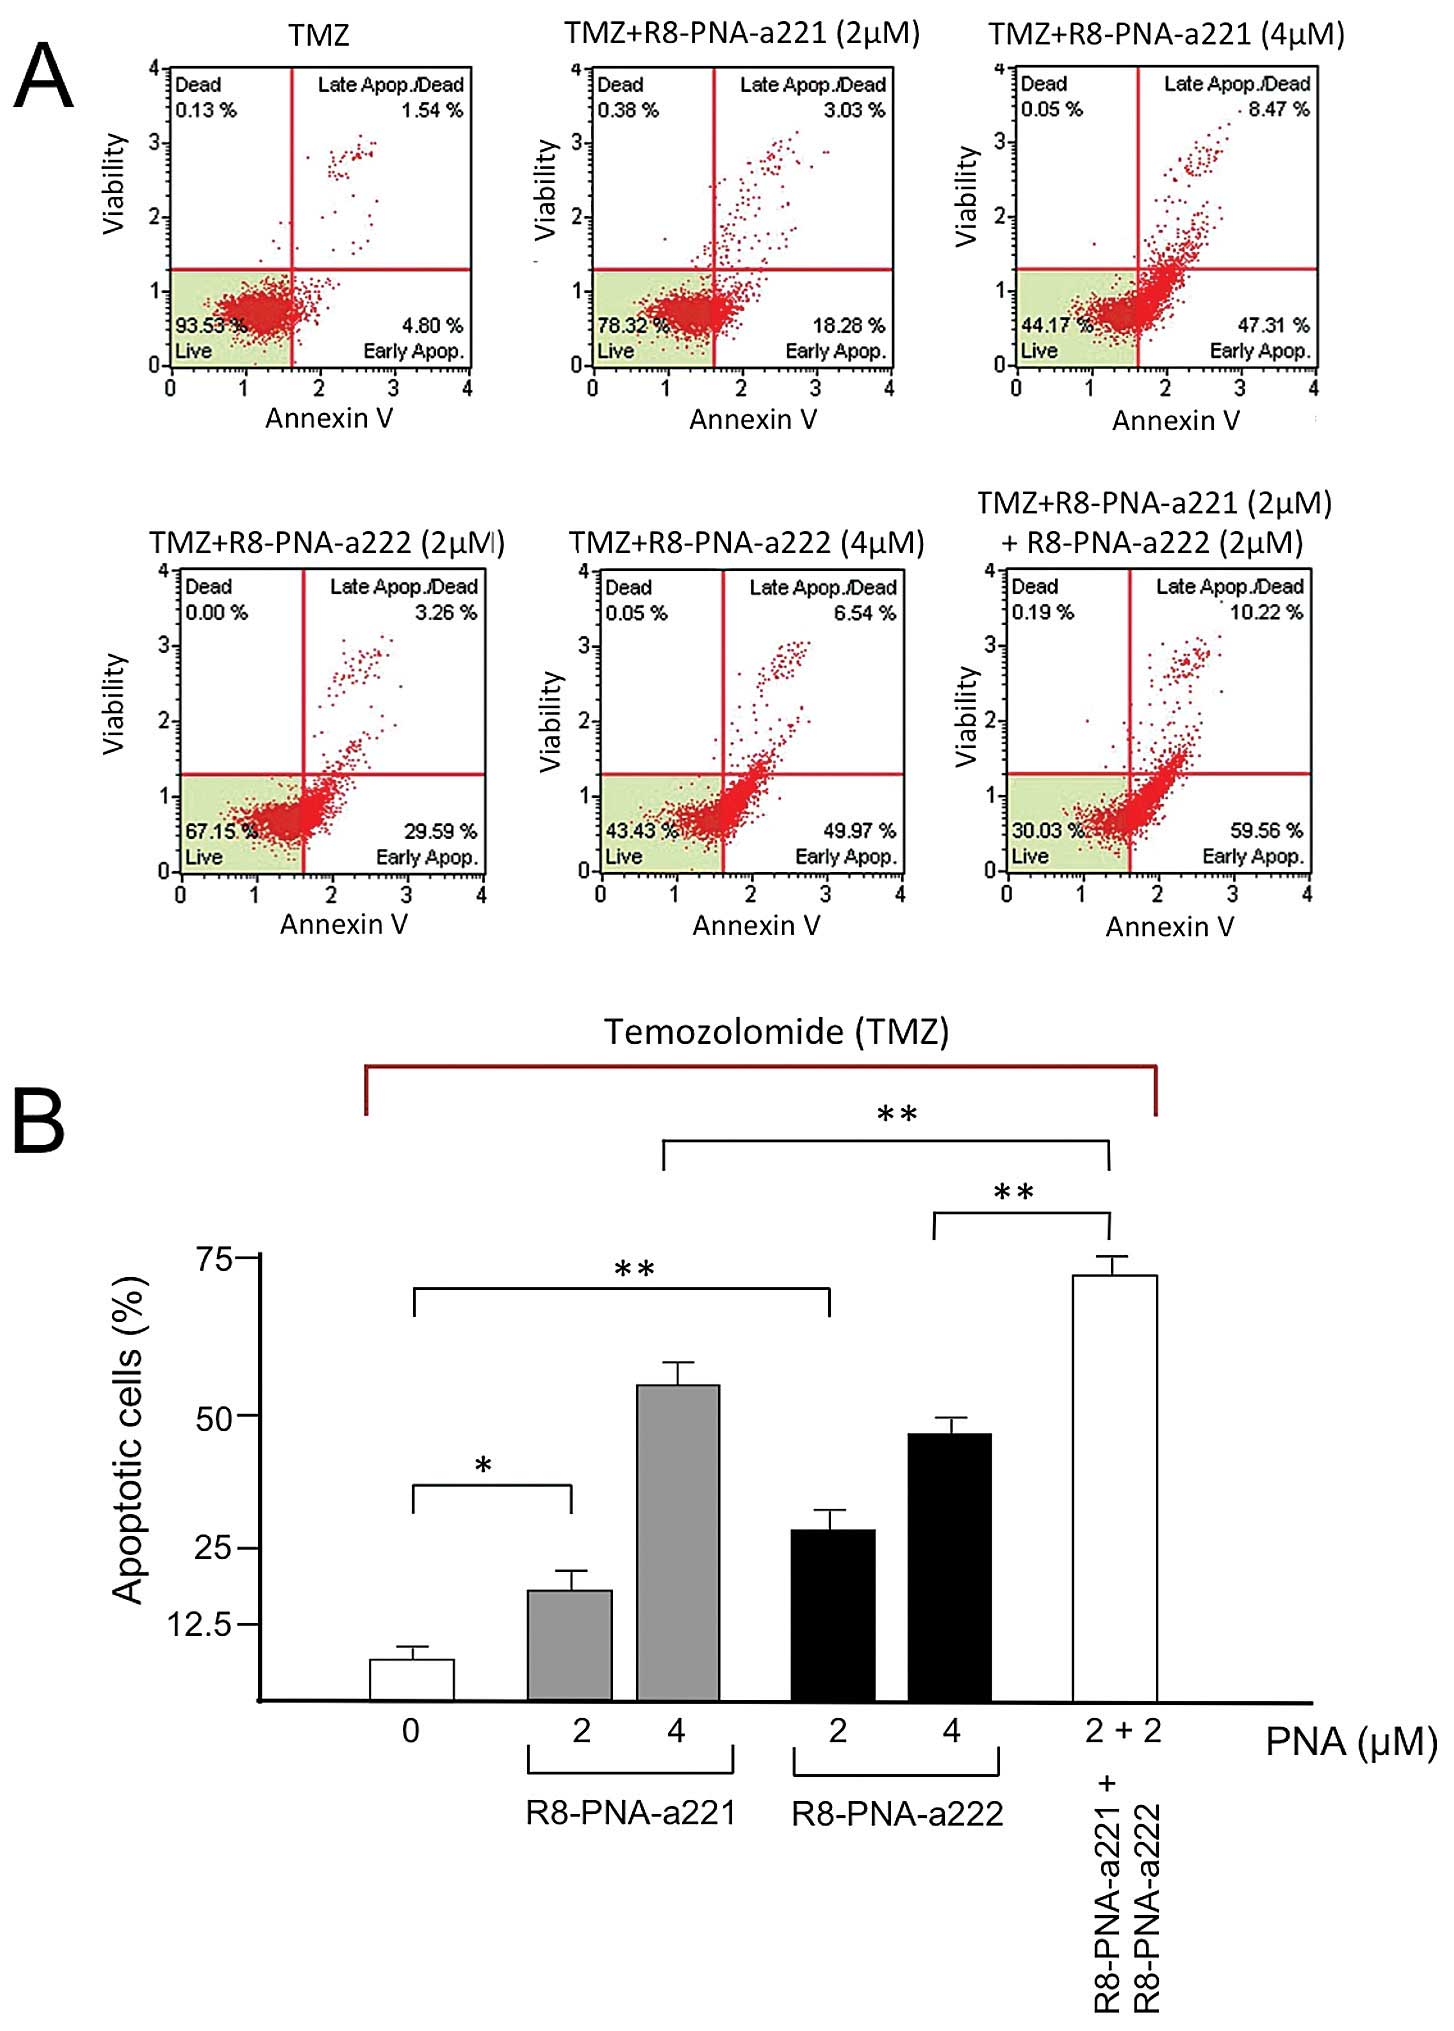 High Levels Of Apoptosis Are Induced In Human Glioma Cell Lines By Pna L Block Diagram T98g Cells Were Treated With 400 M Tmz The Absence Left White Box Or Presence Indicated Concentrations R8 A221 Grey Columns And